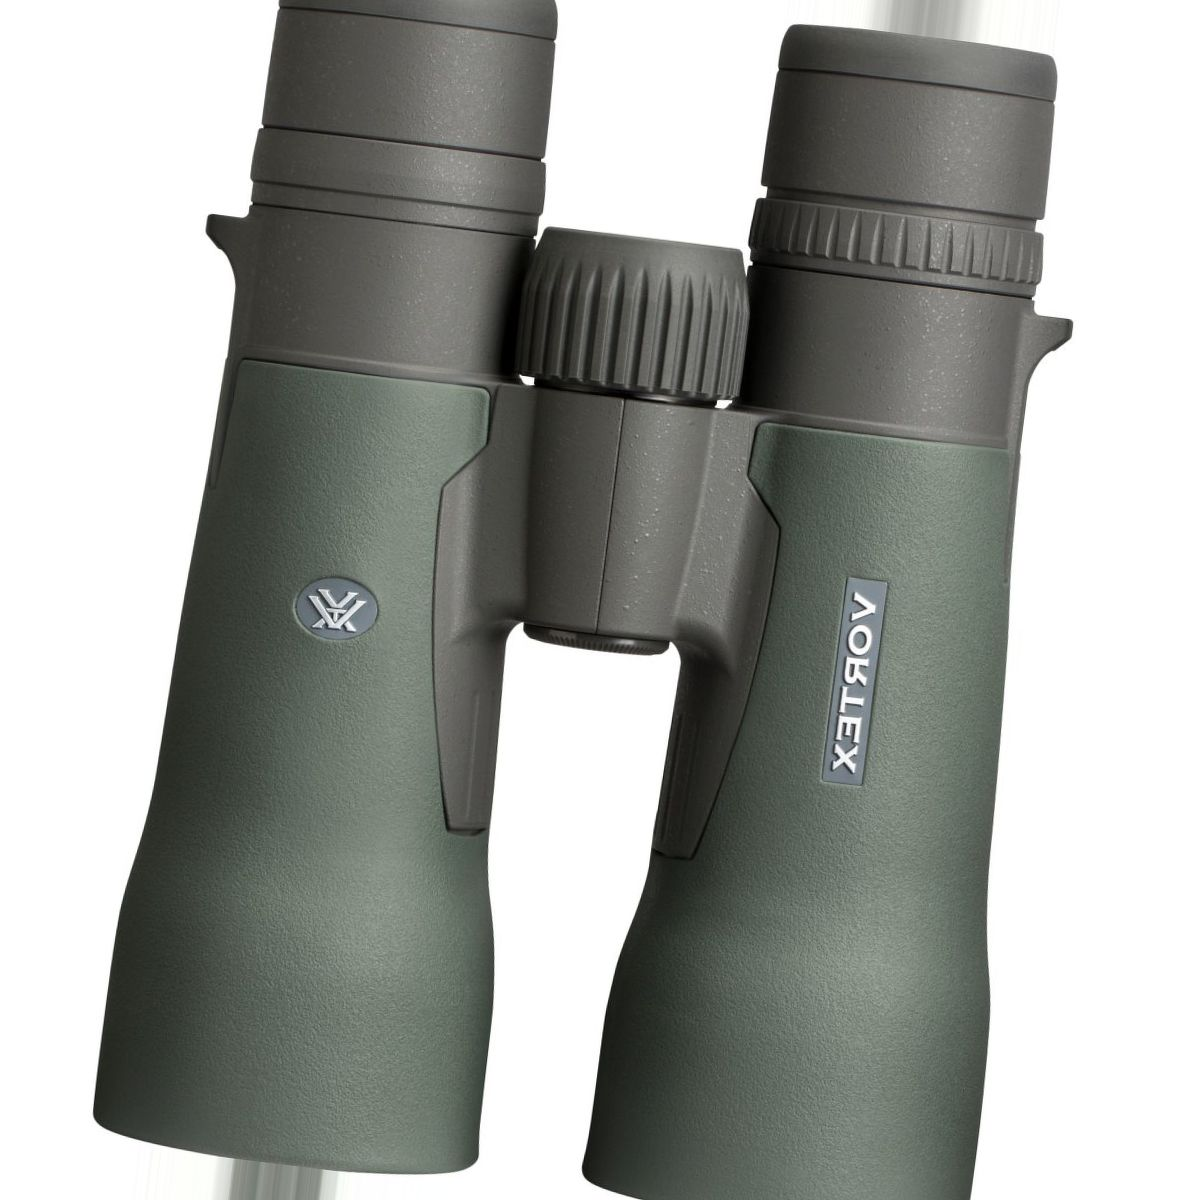 Vortex® Optics Razor HD 12x50 Binoculars